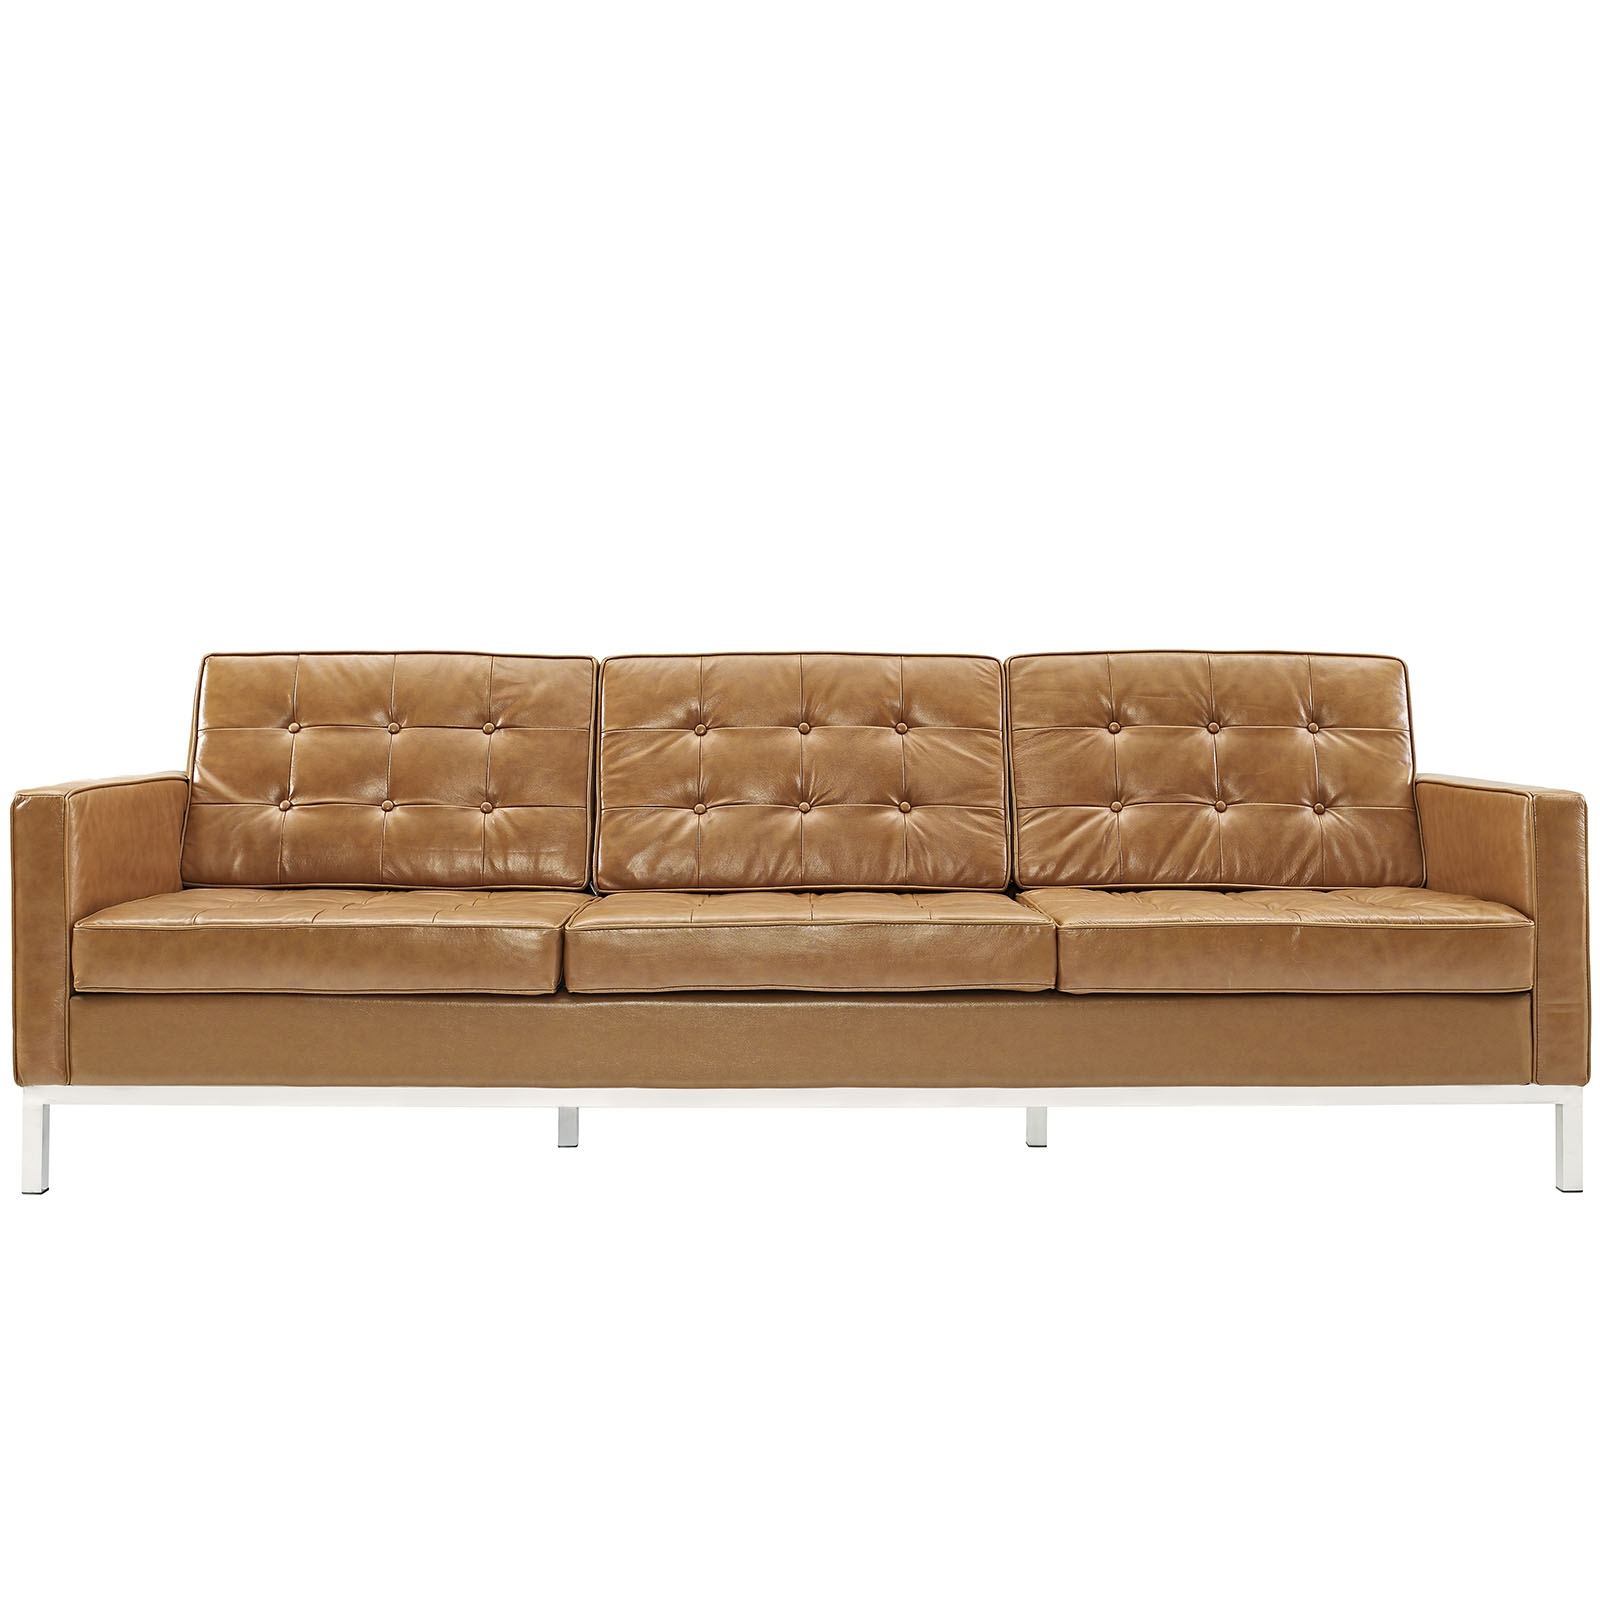 Modern Tan Leather Sofa Hereo Sofa In Florence Leather Sofas (Image 9 of 15)